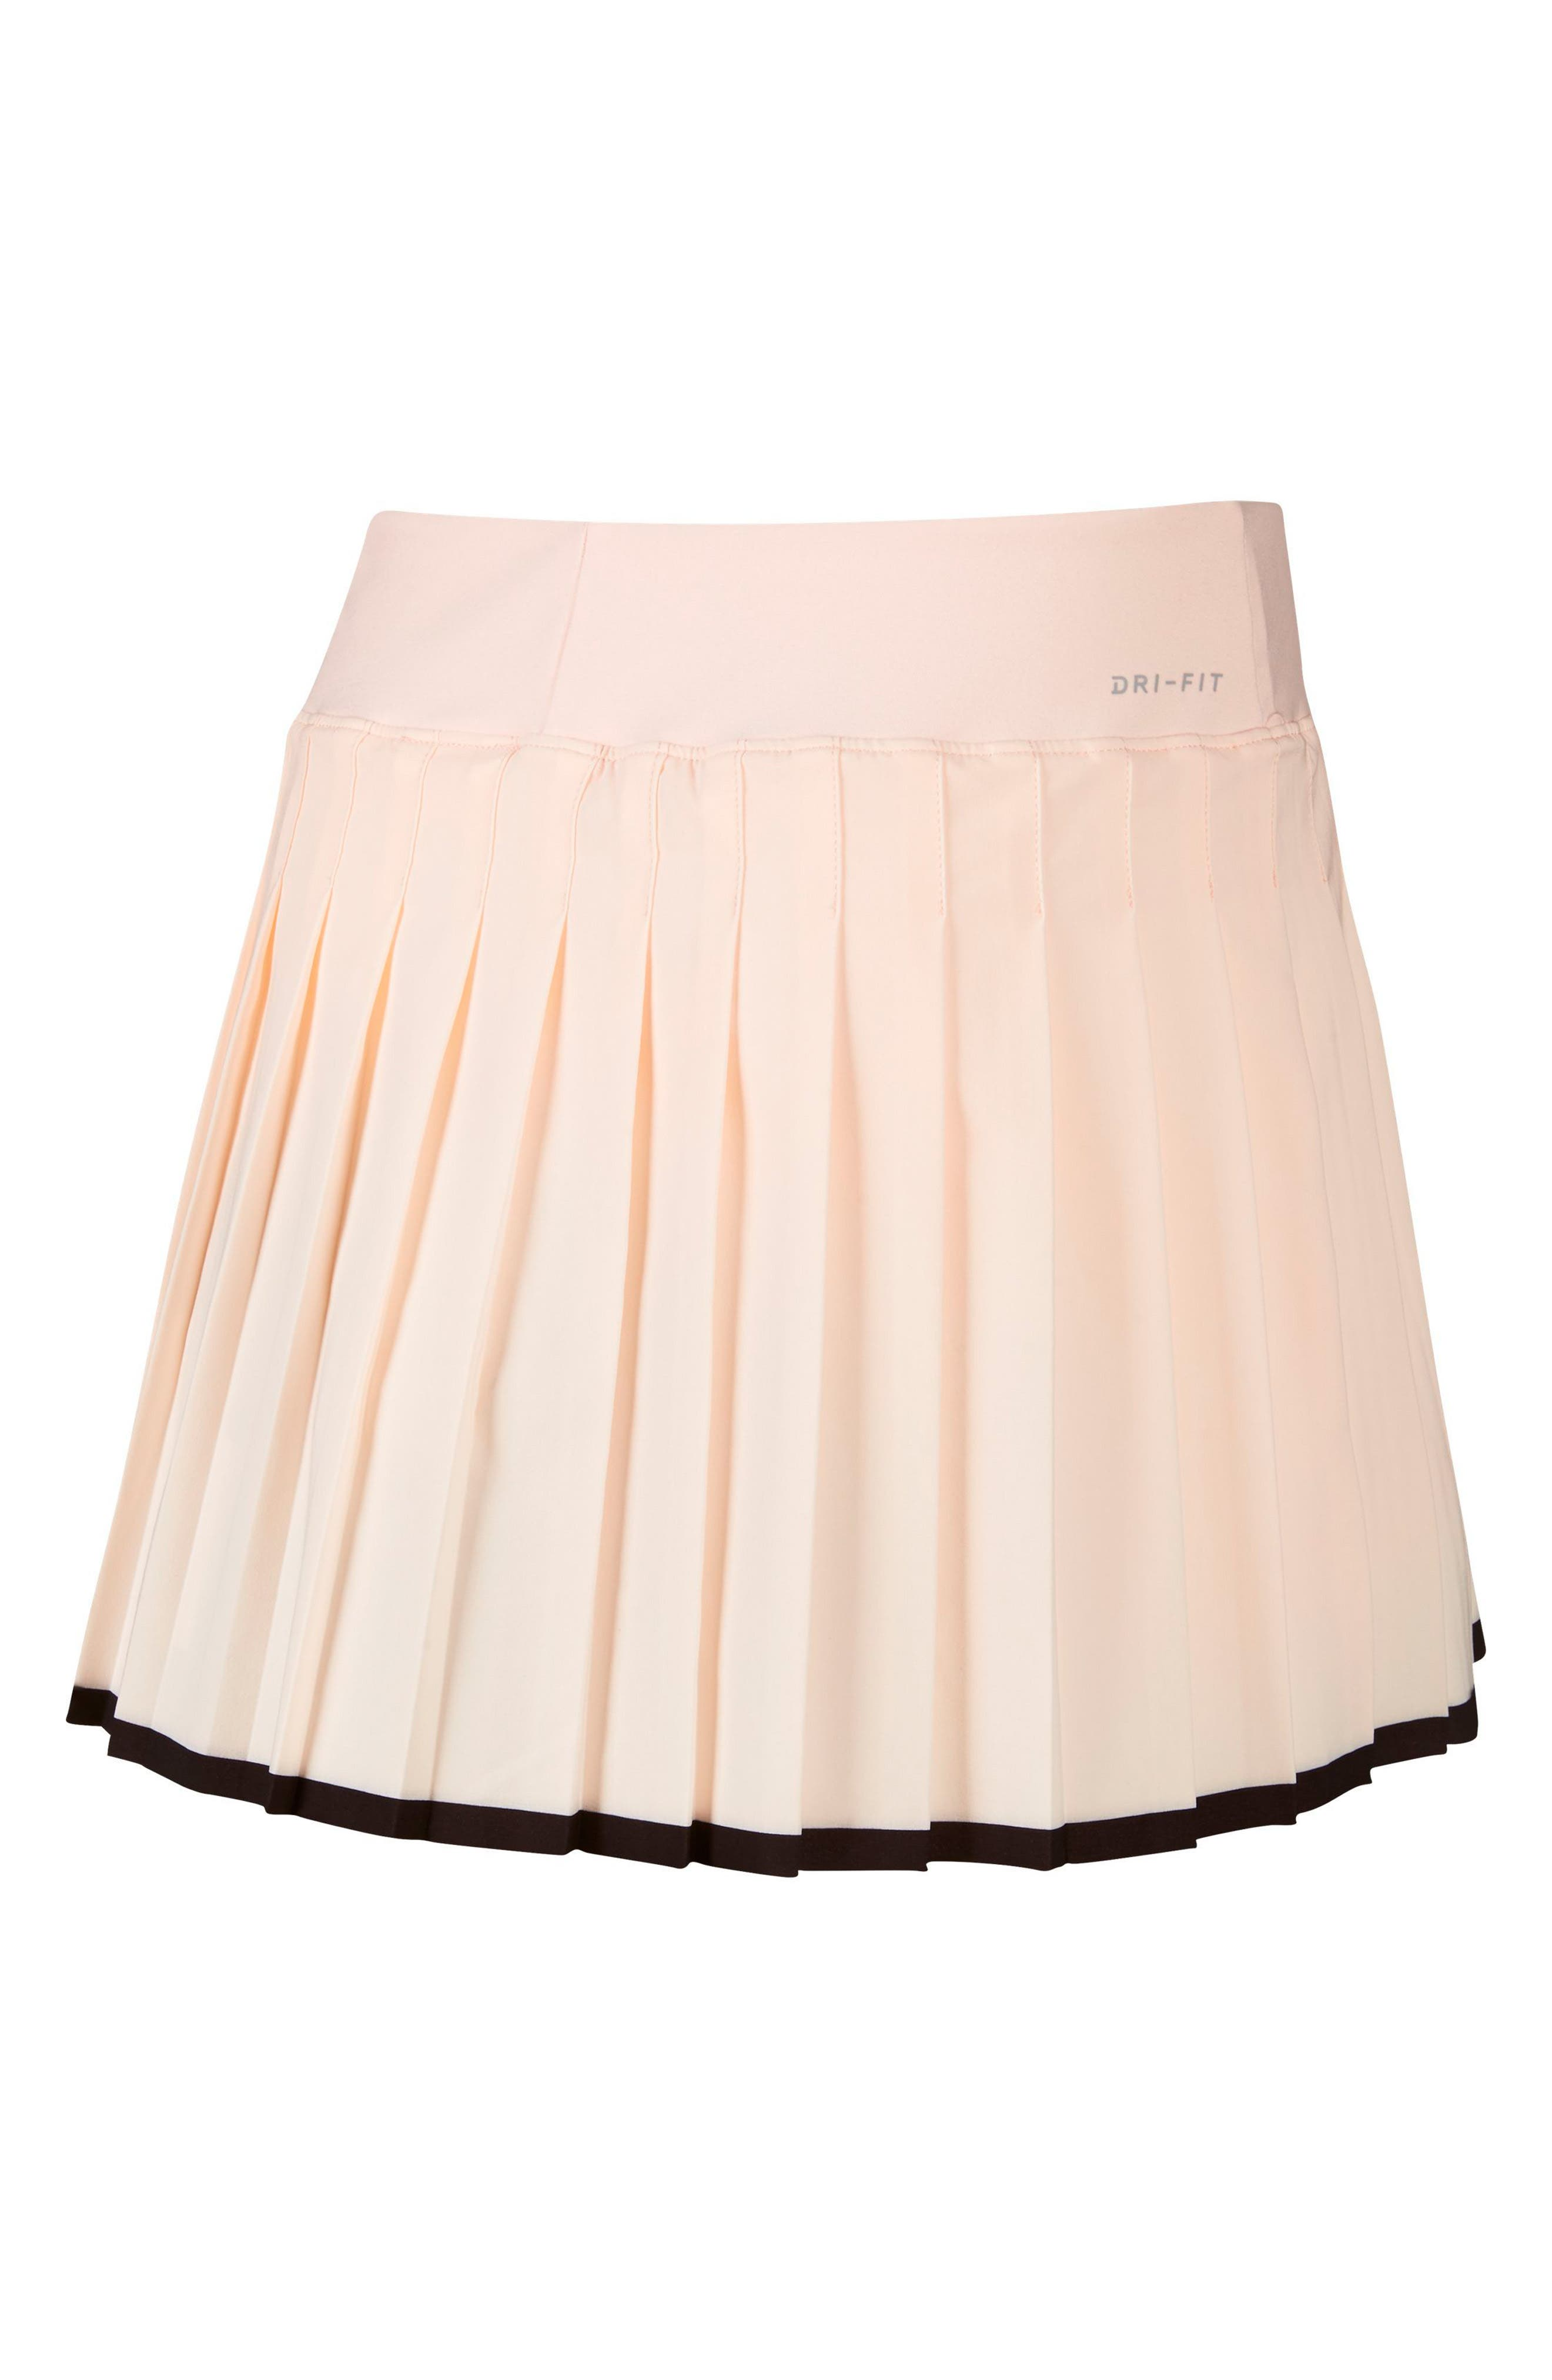 Women's Court Victory Tennis Skirt,                             Alternate thumbnail 5, color,                             959